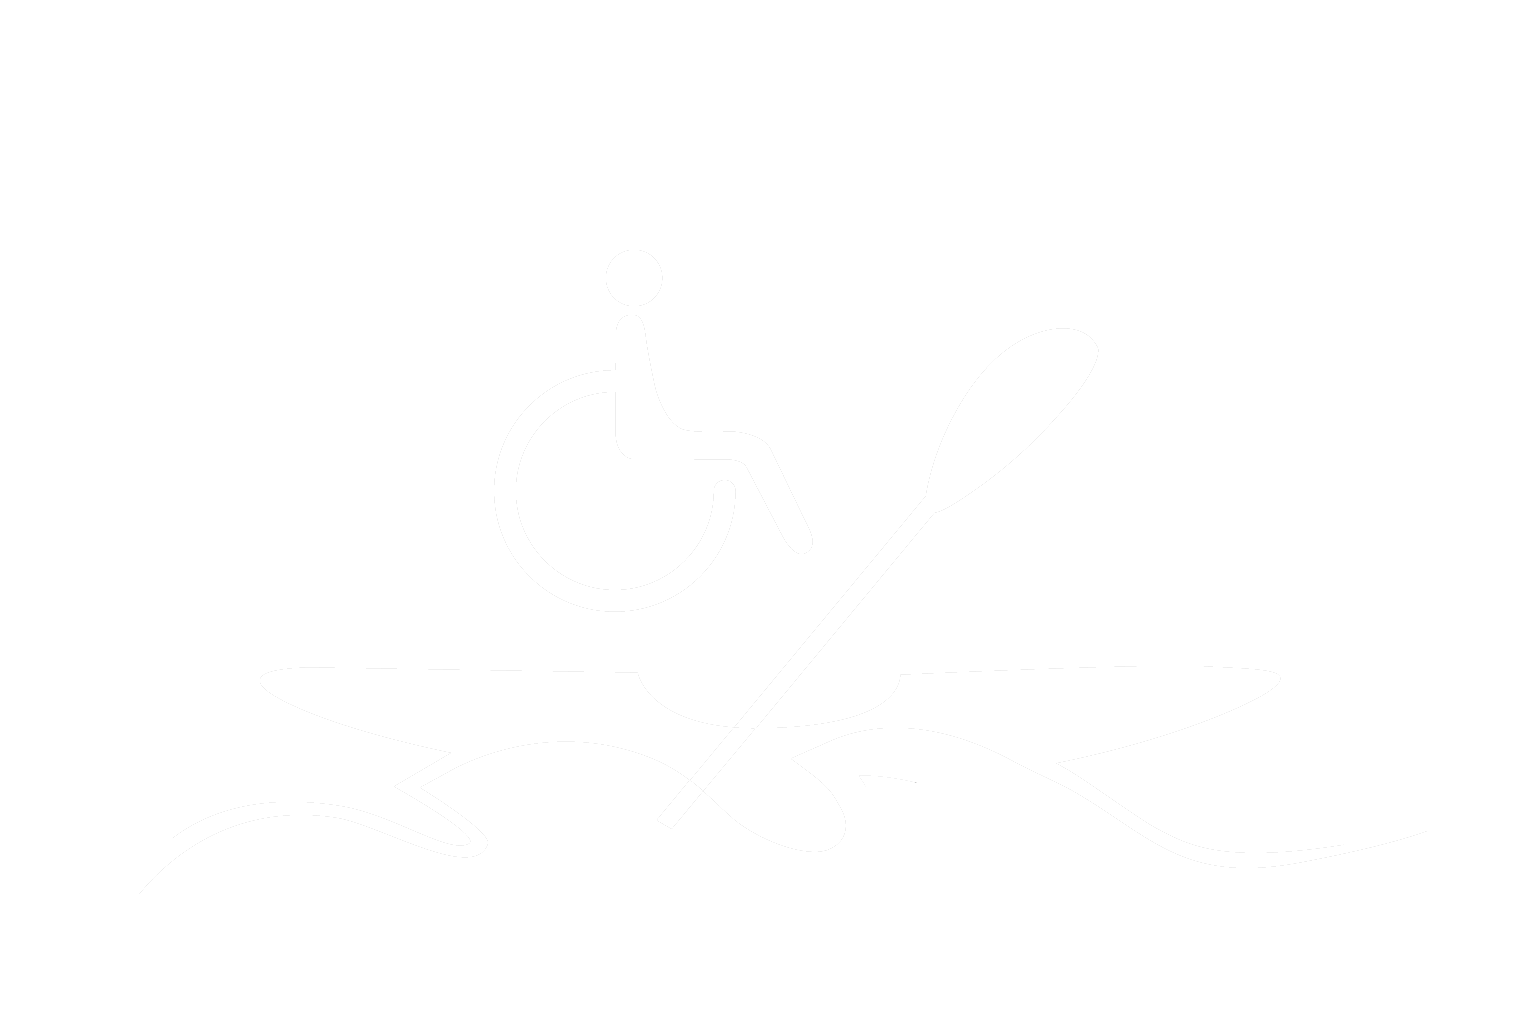 1. Inklusives Kanuzentrum e.V.